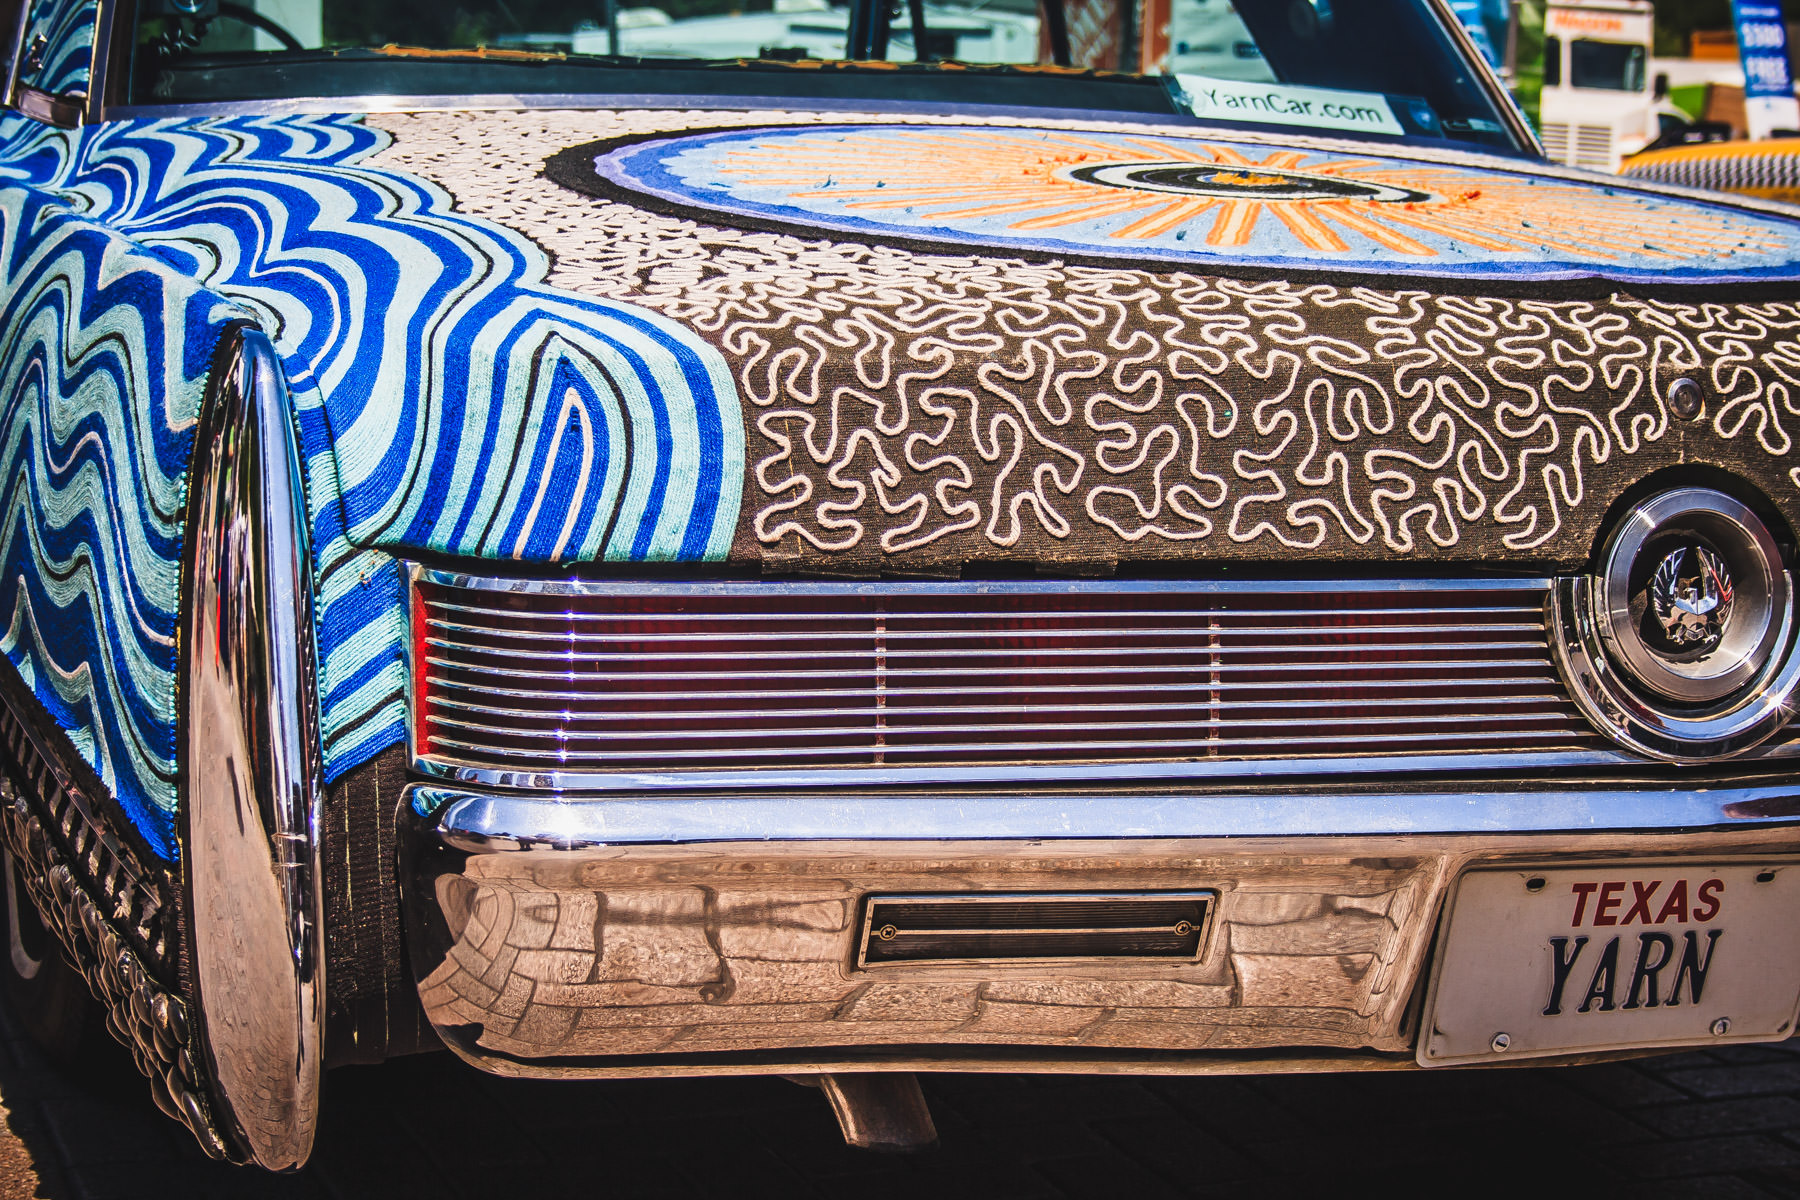 A yarn-covered art car spotted at the Dallas Arts Festival.